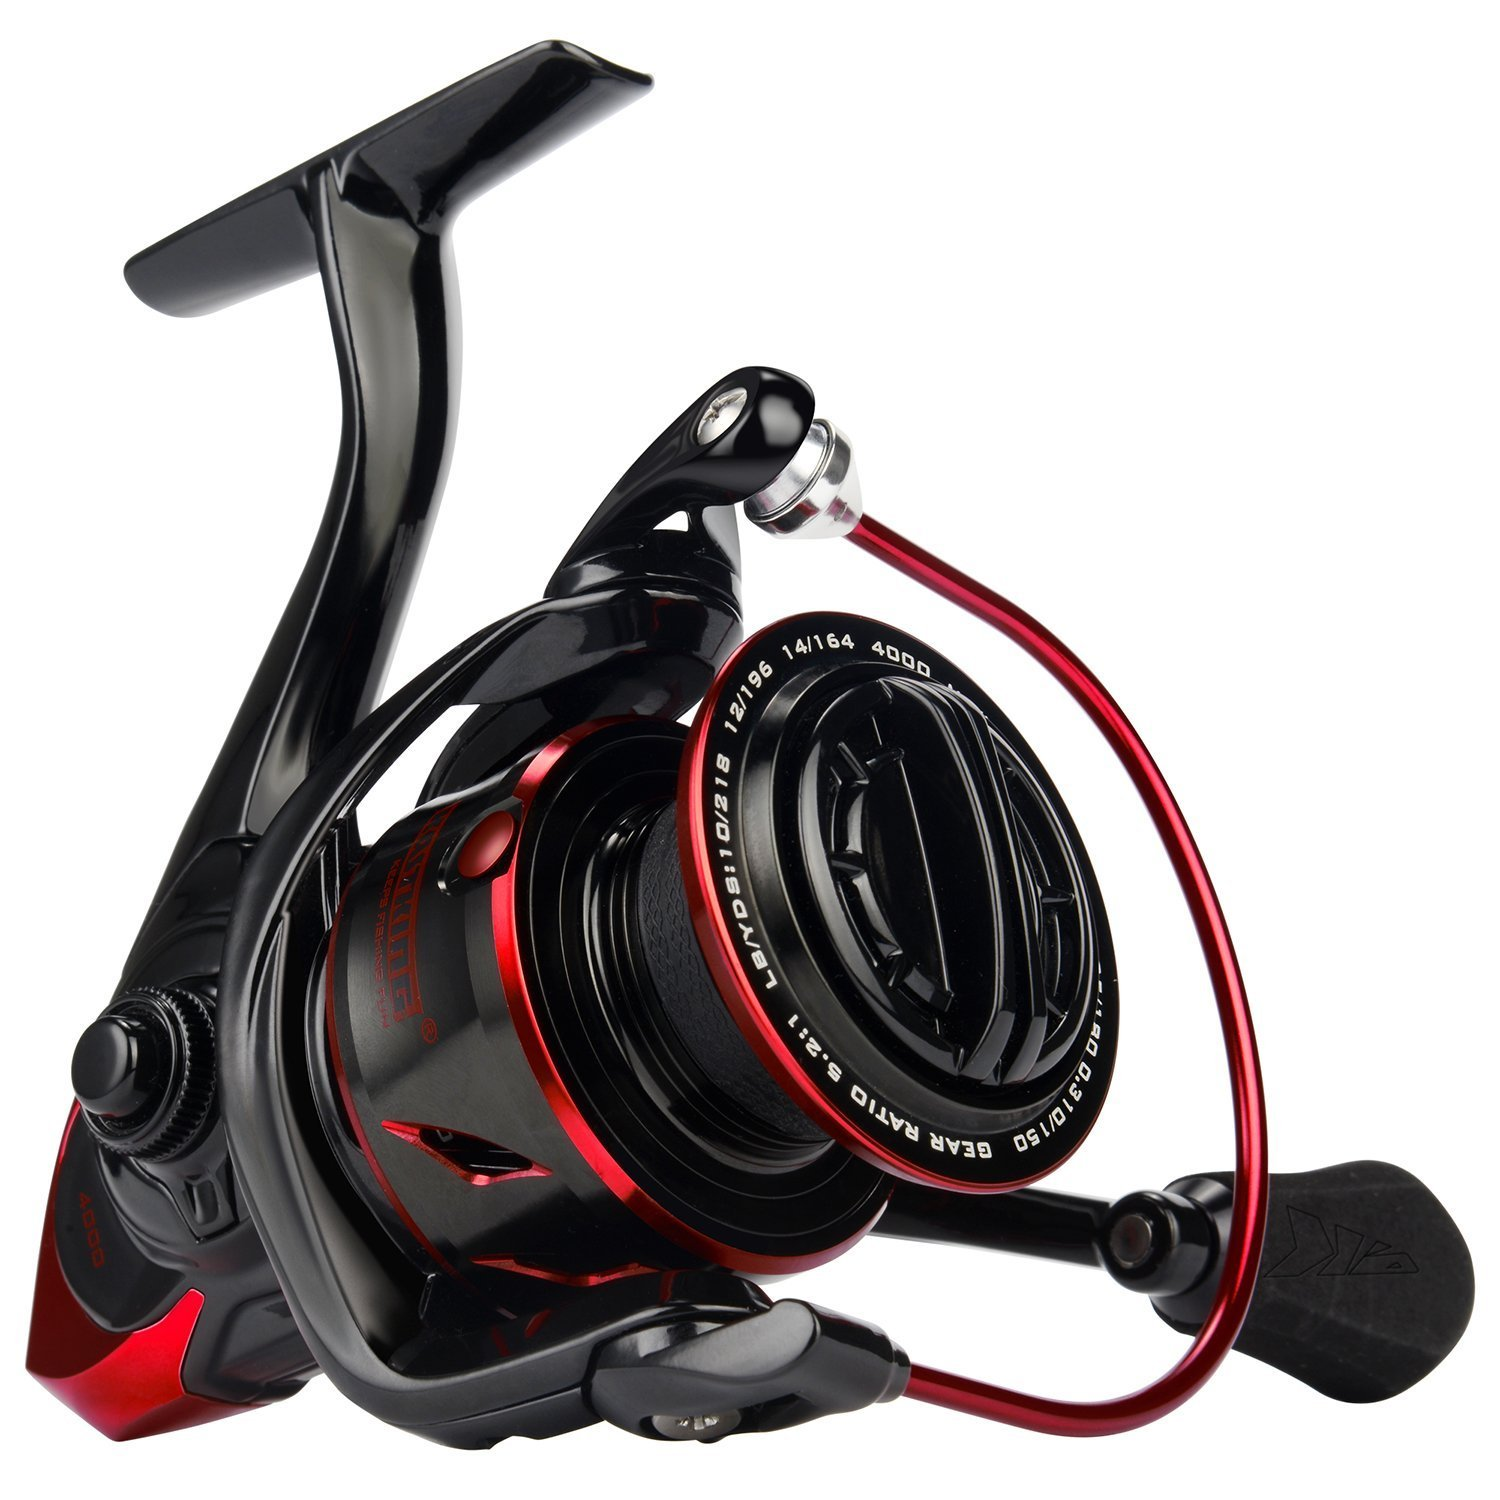 KastKing Sharky III 3000 spinning reel